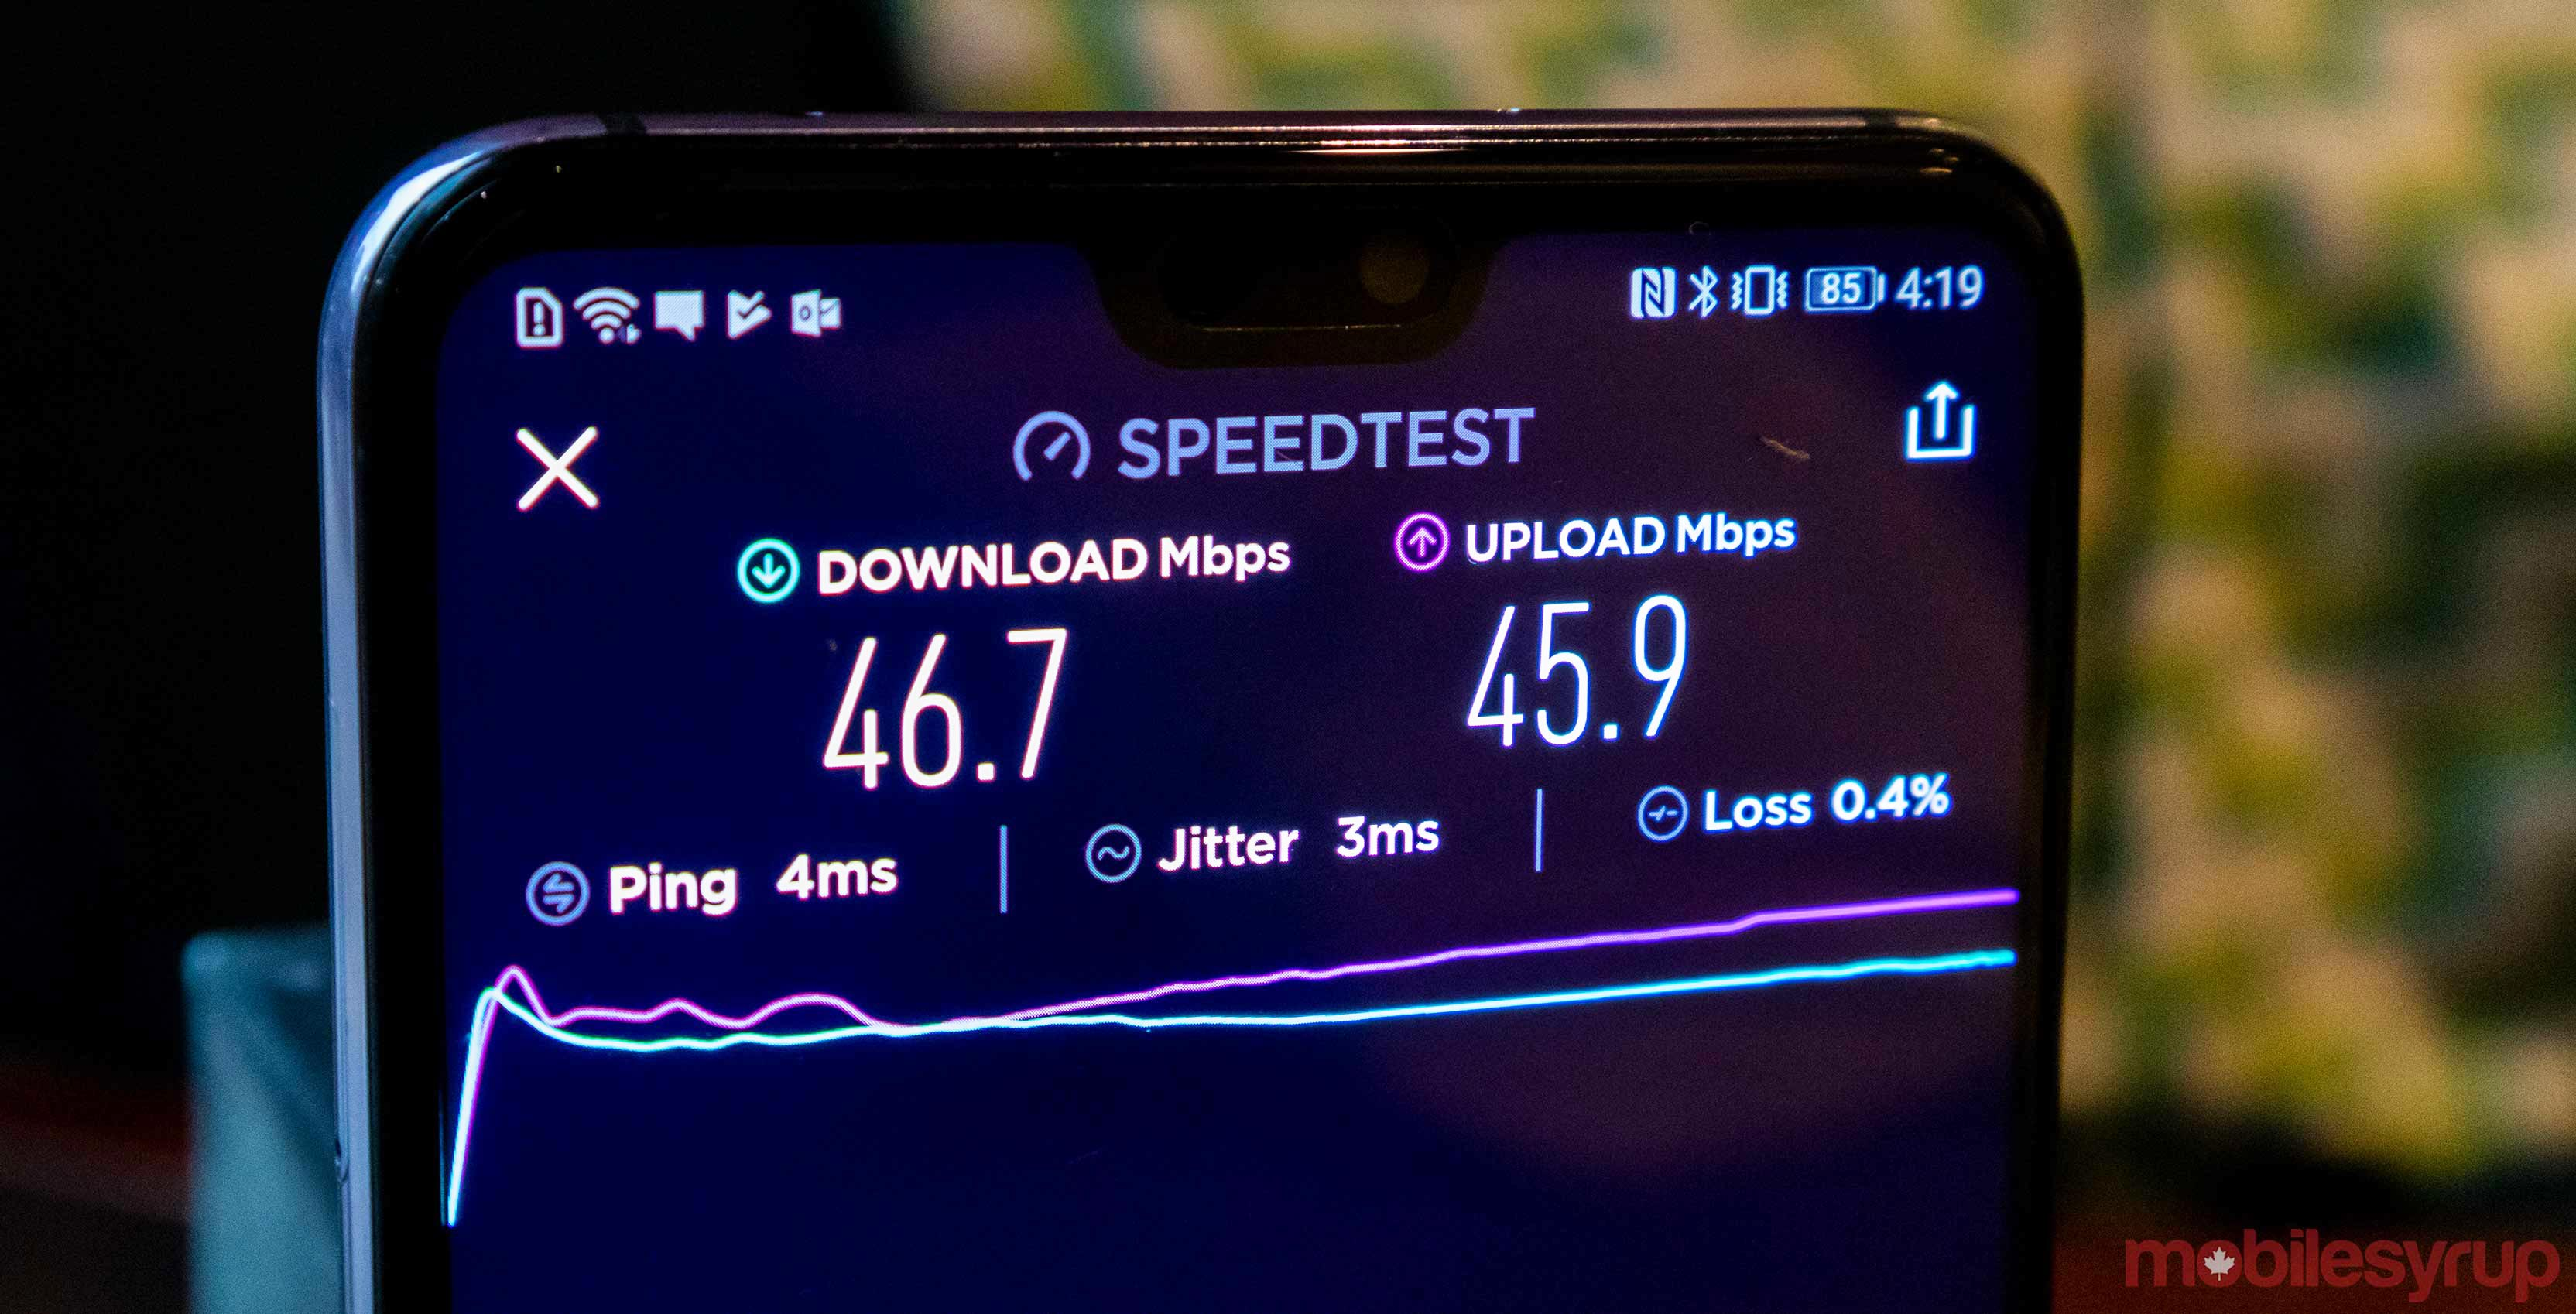 Canada's average broadband download speed is 86 92Mbps